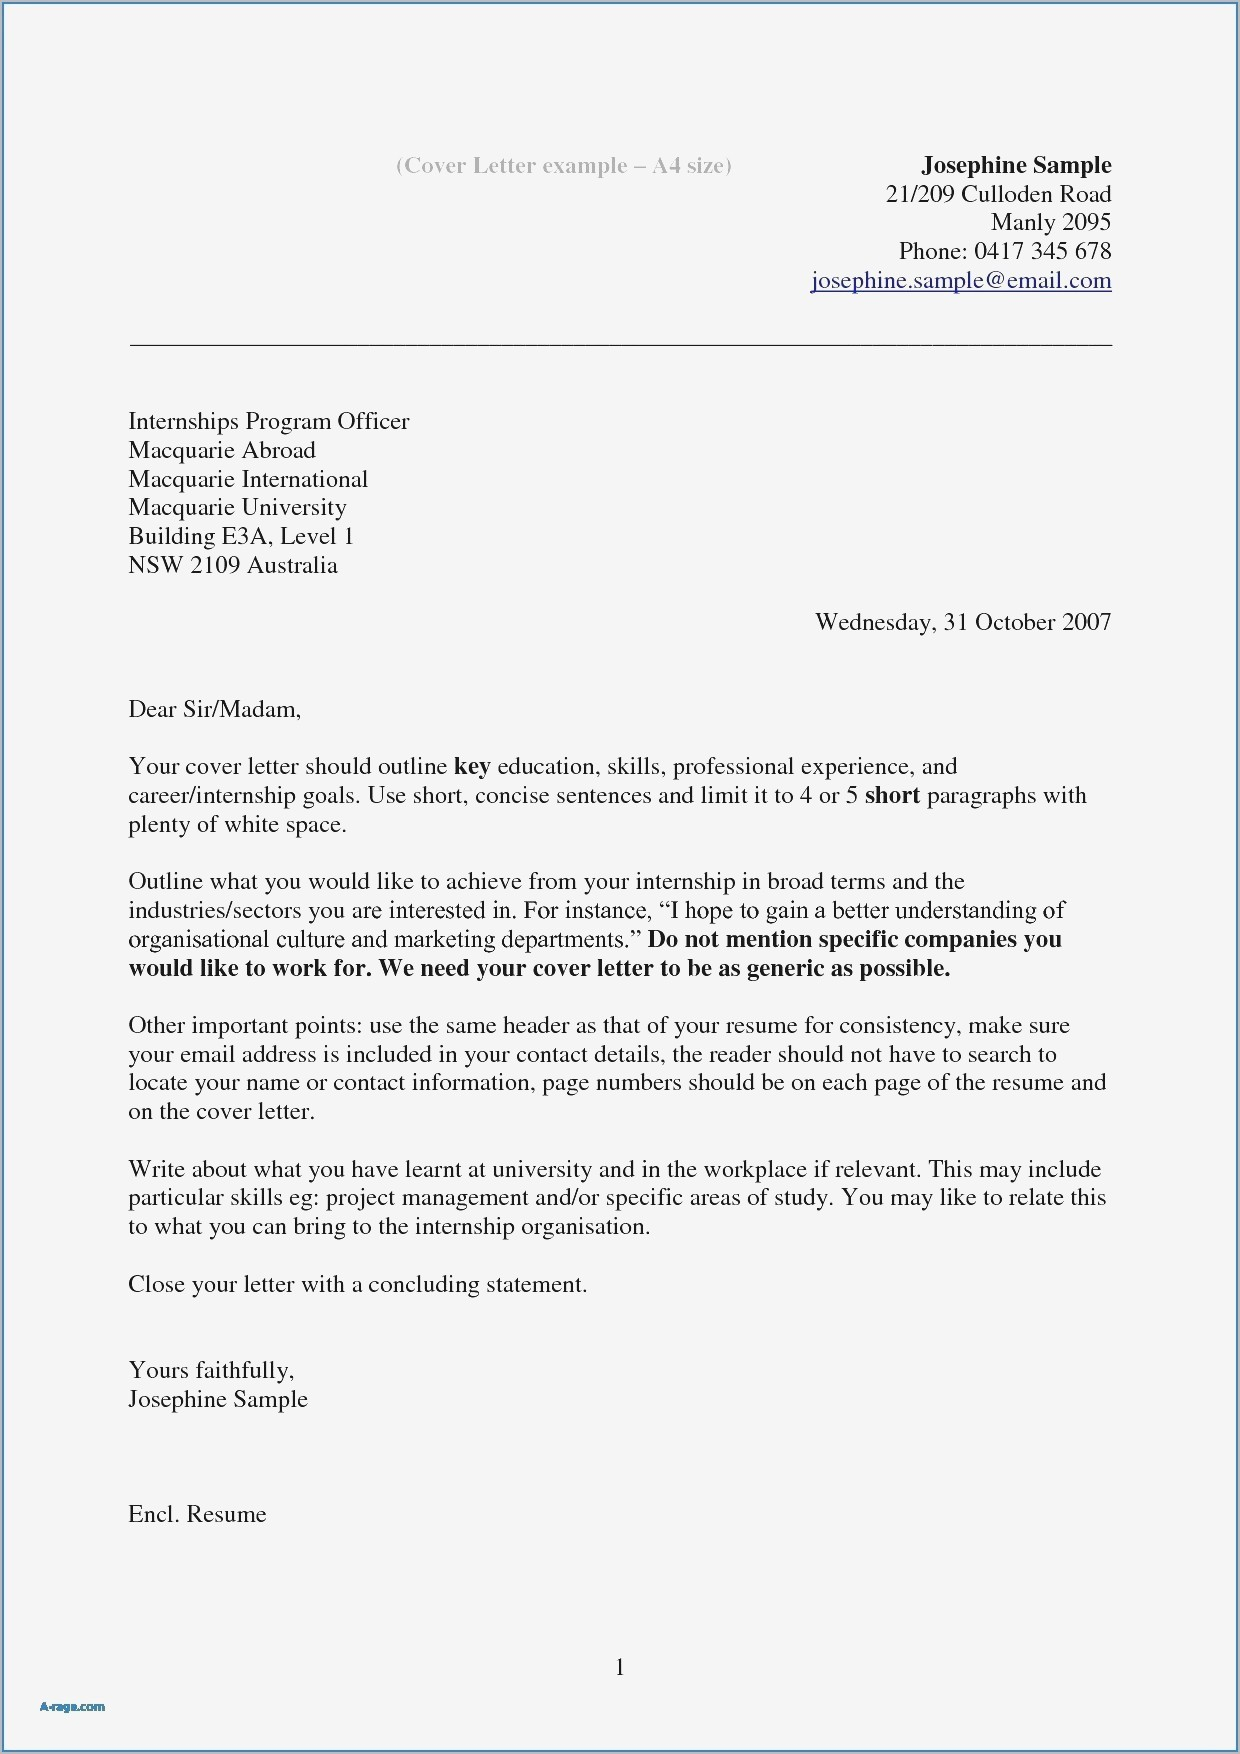 Statement Of Service Letter Template - Cover Letter for Pany Not Hiring